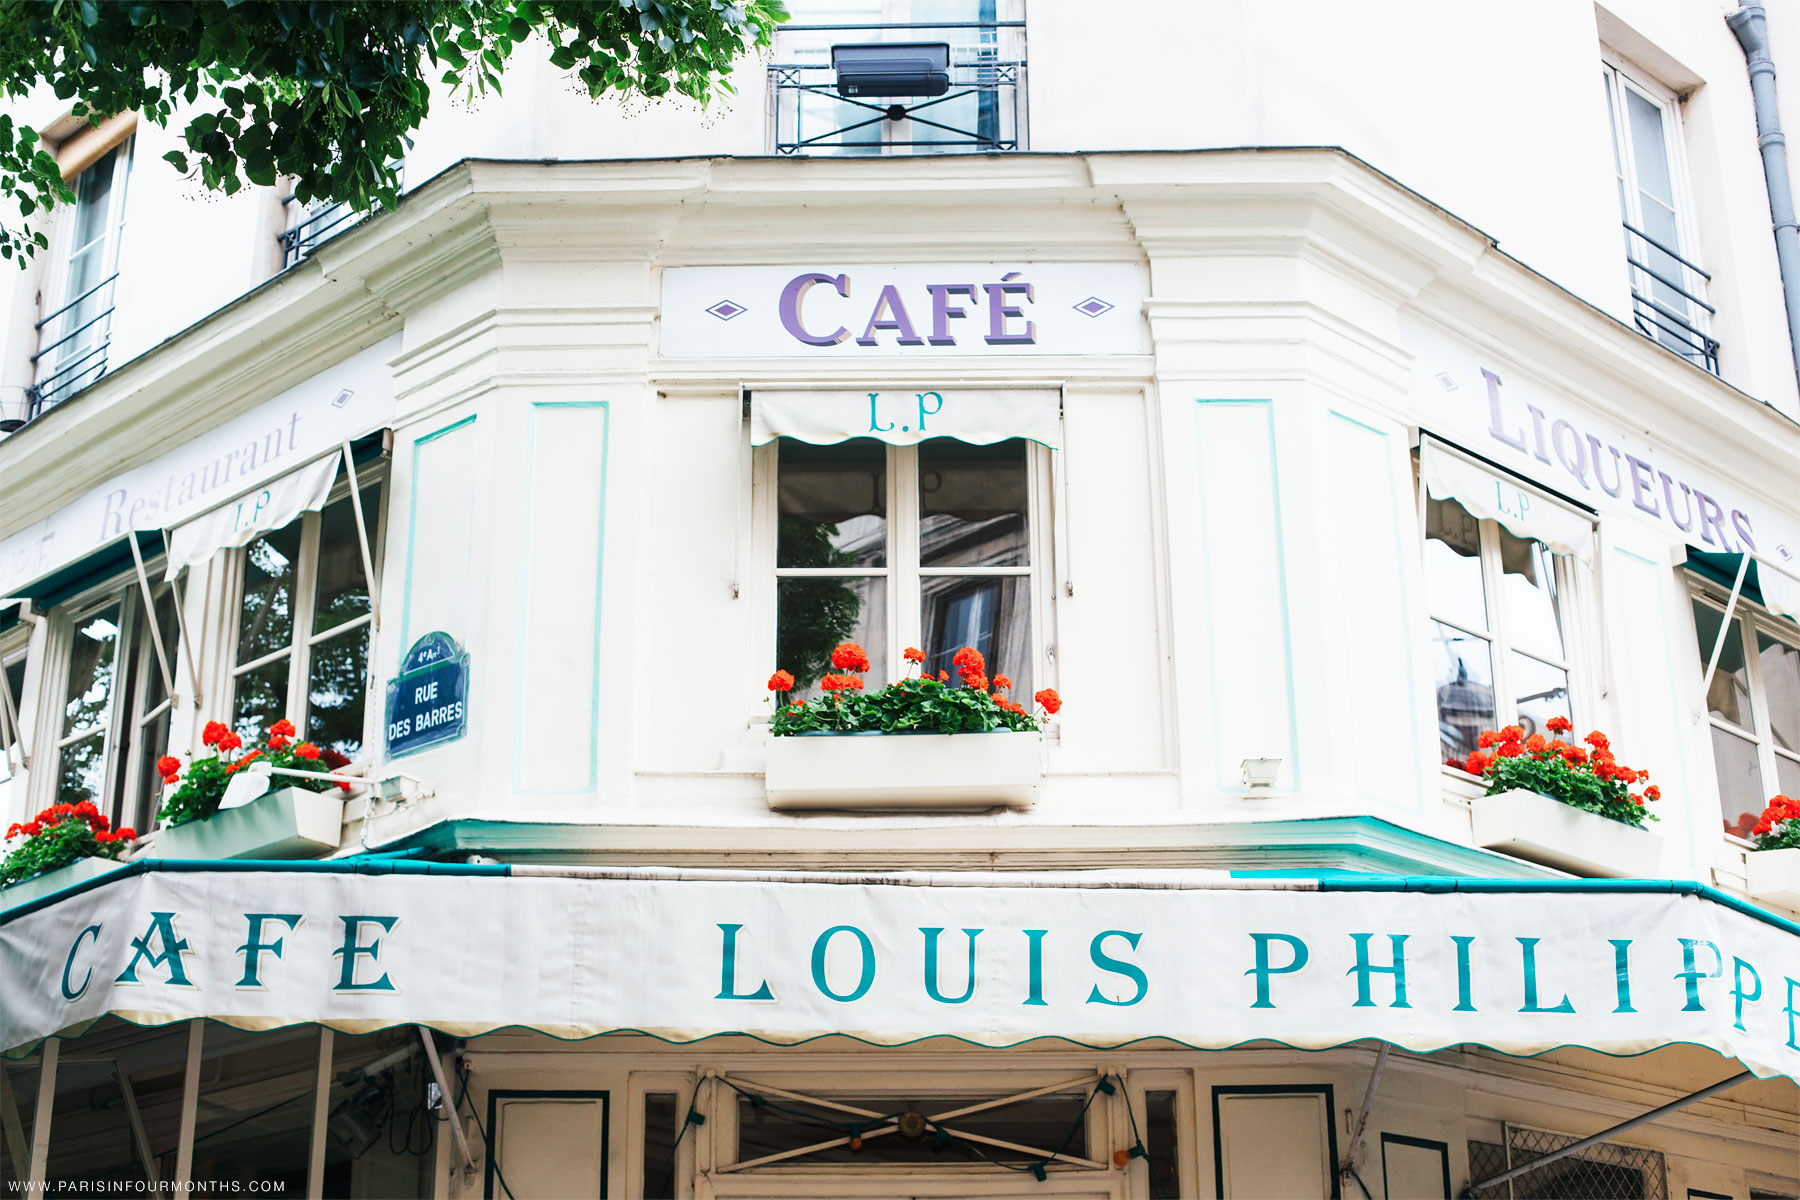 Café Louis-Philippe by Carin Olsson (Paris in Four Months)